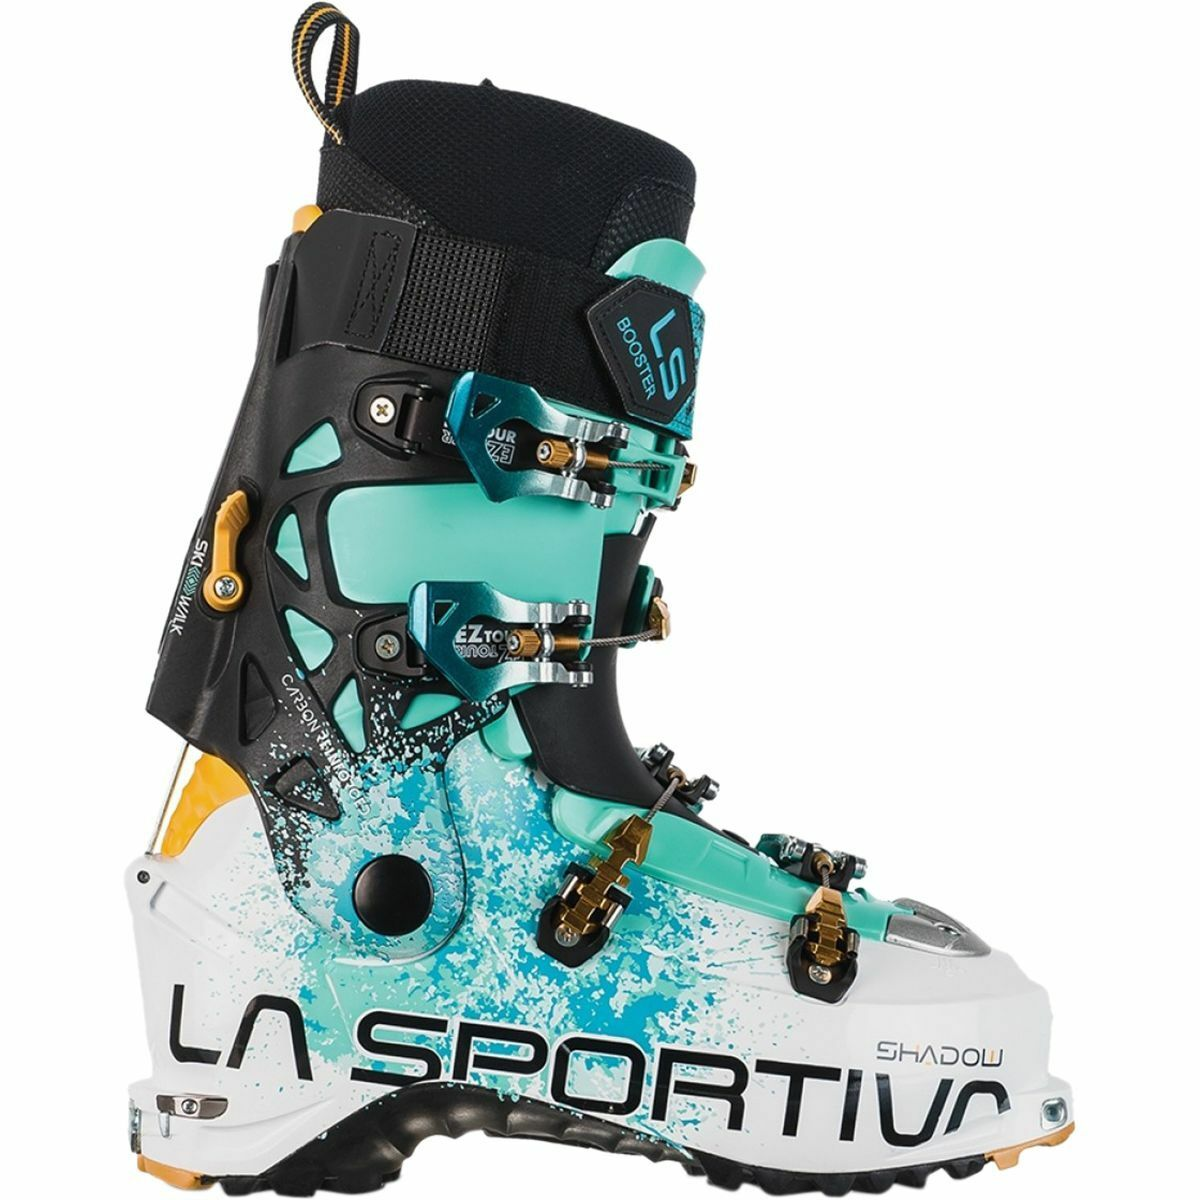 La Sportiva Shadow Alpine Touring Boot -  Women's  with 100% quality and %100 service